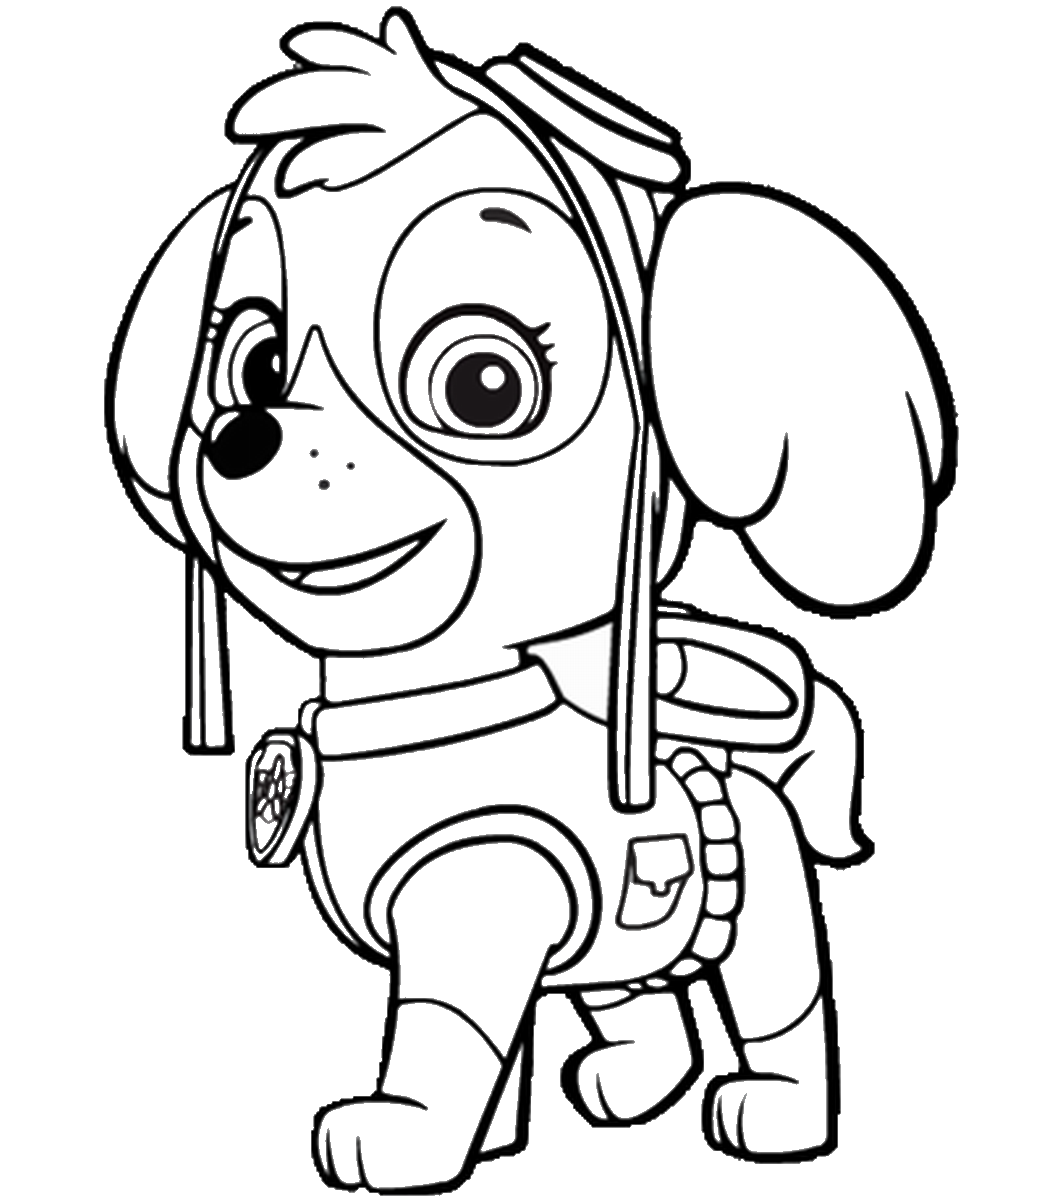 Pin By Sharon Urban On Coloring Pages Paw Patrol Coloring Pages Paw Patrol Coloring Skye Paw Patrol